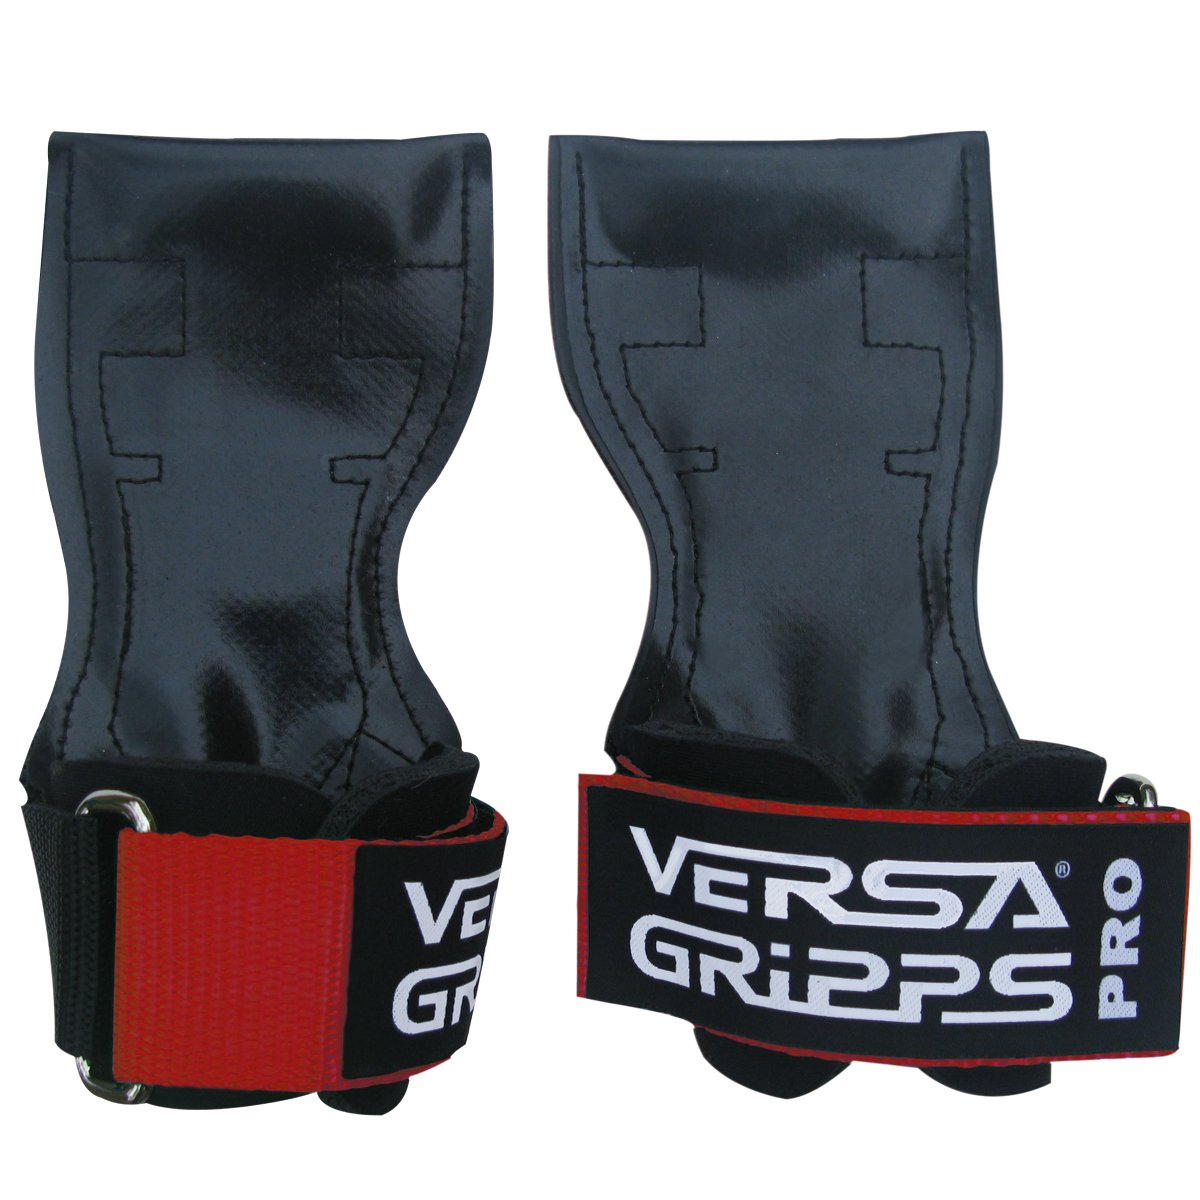 【予約中!】 Versa Gripps プロオセンティック世界で最も優れたトレーニングアクセサリーの一つアメリカ製 Gripps。 B00YYTPRD8 Versa Royal Red B00YYTPRD8/Black X-Small X-Small|Royal Red/Black, LIFE TIME AGGREGATE:96de6de9 --- arianechie.dominiotemporario.com